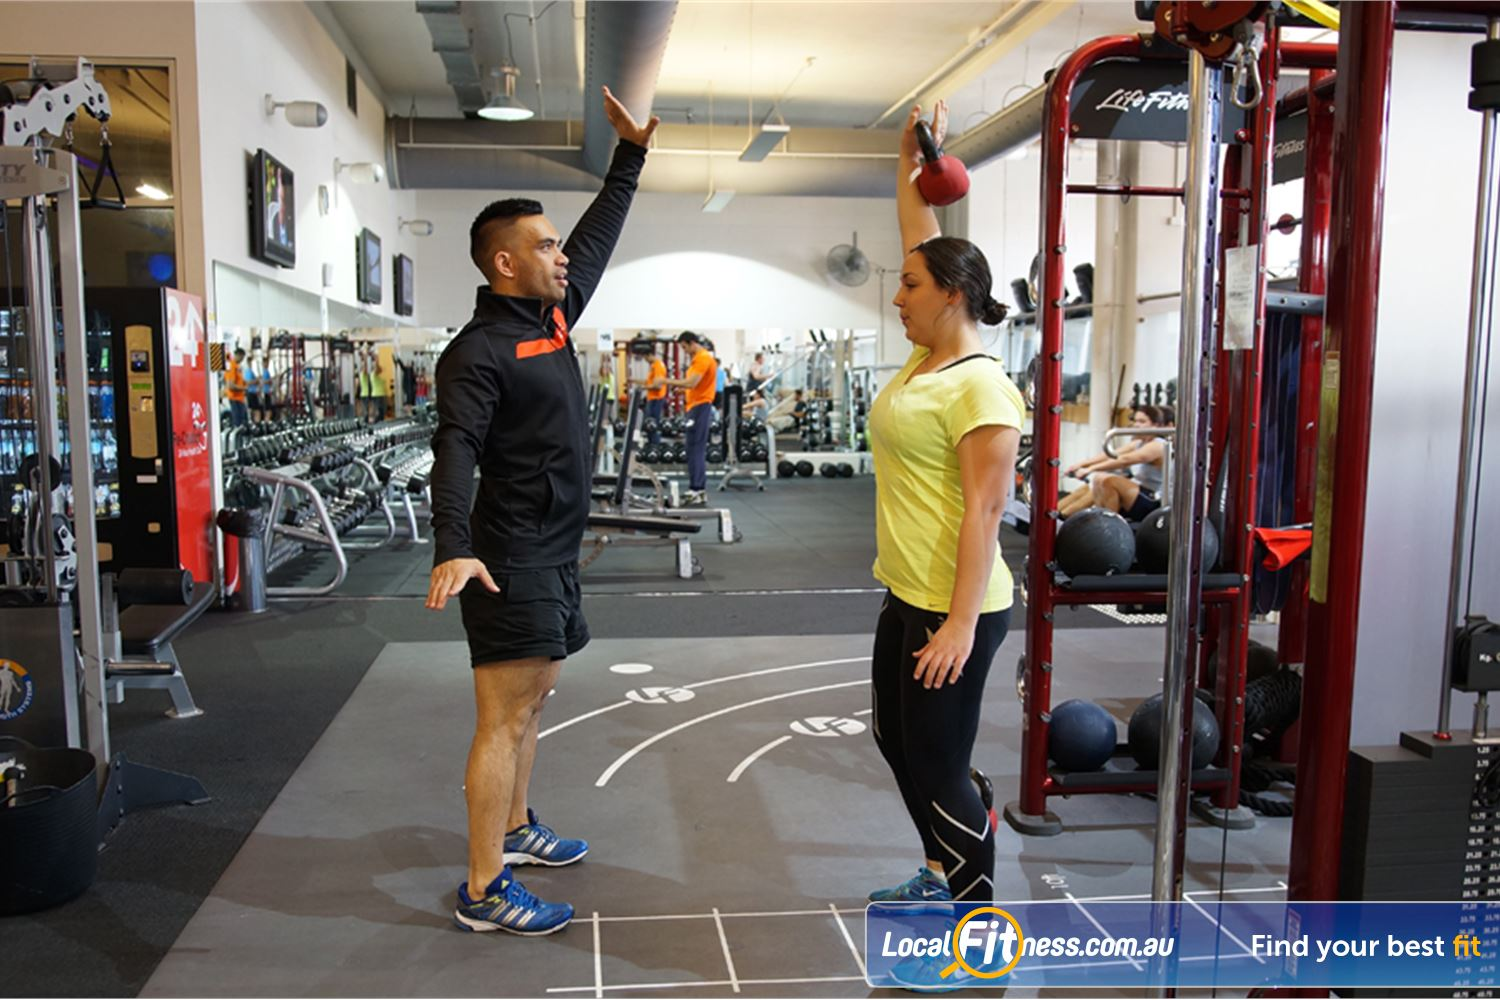 Goodlife Health Clubs South Melbourne South Melbourne personal trainers can help you fast track your results.